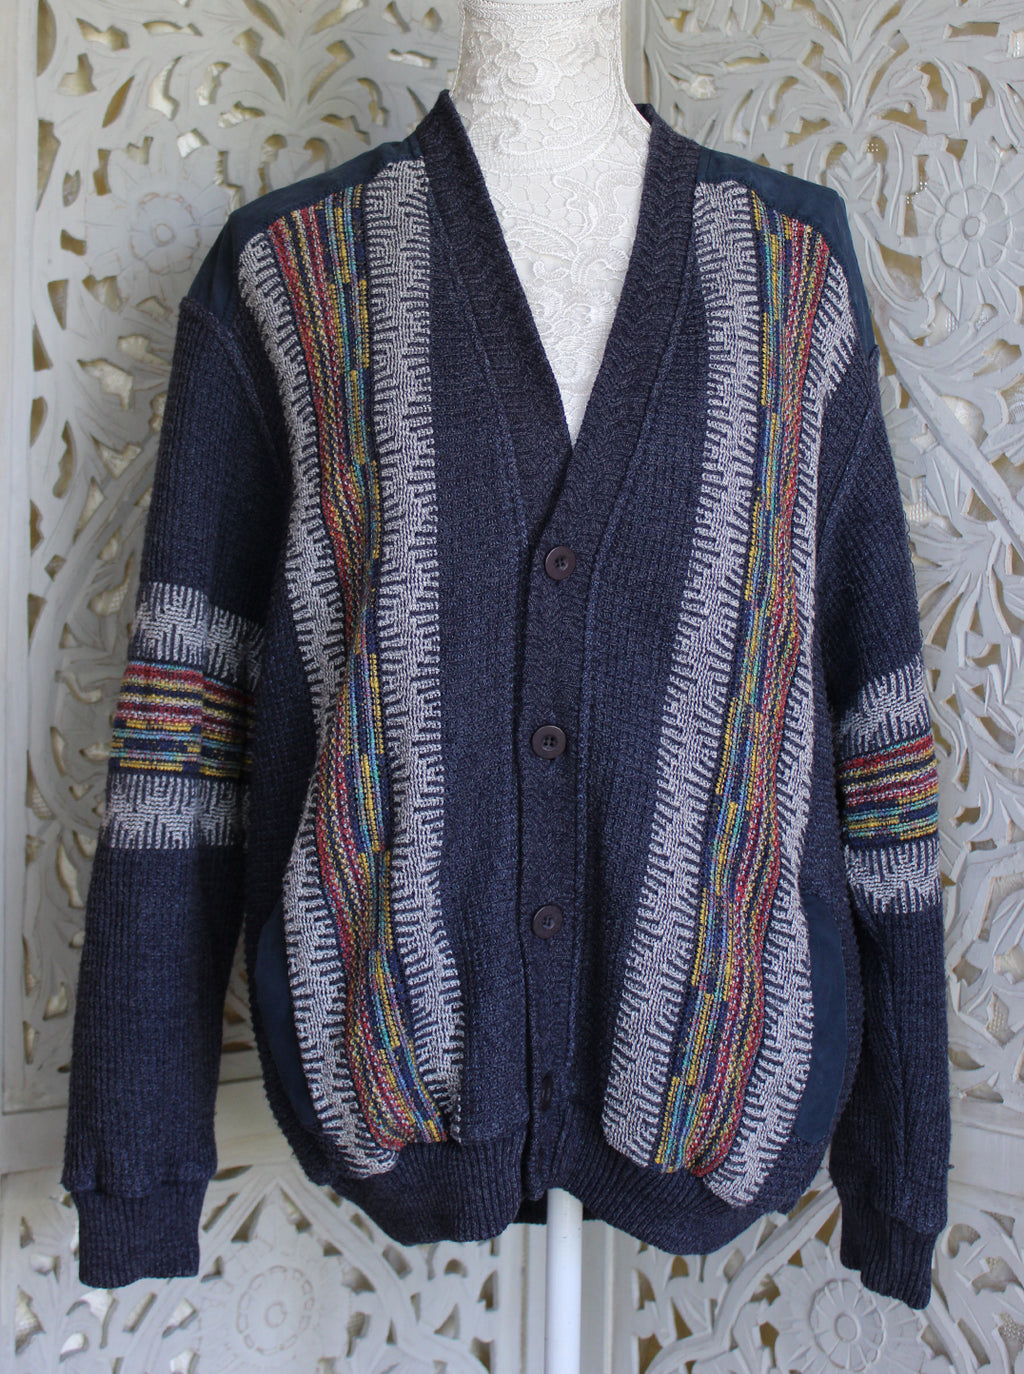 Grey Over-sized Cardigan with Panel Pattern Madgra Vintage